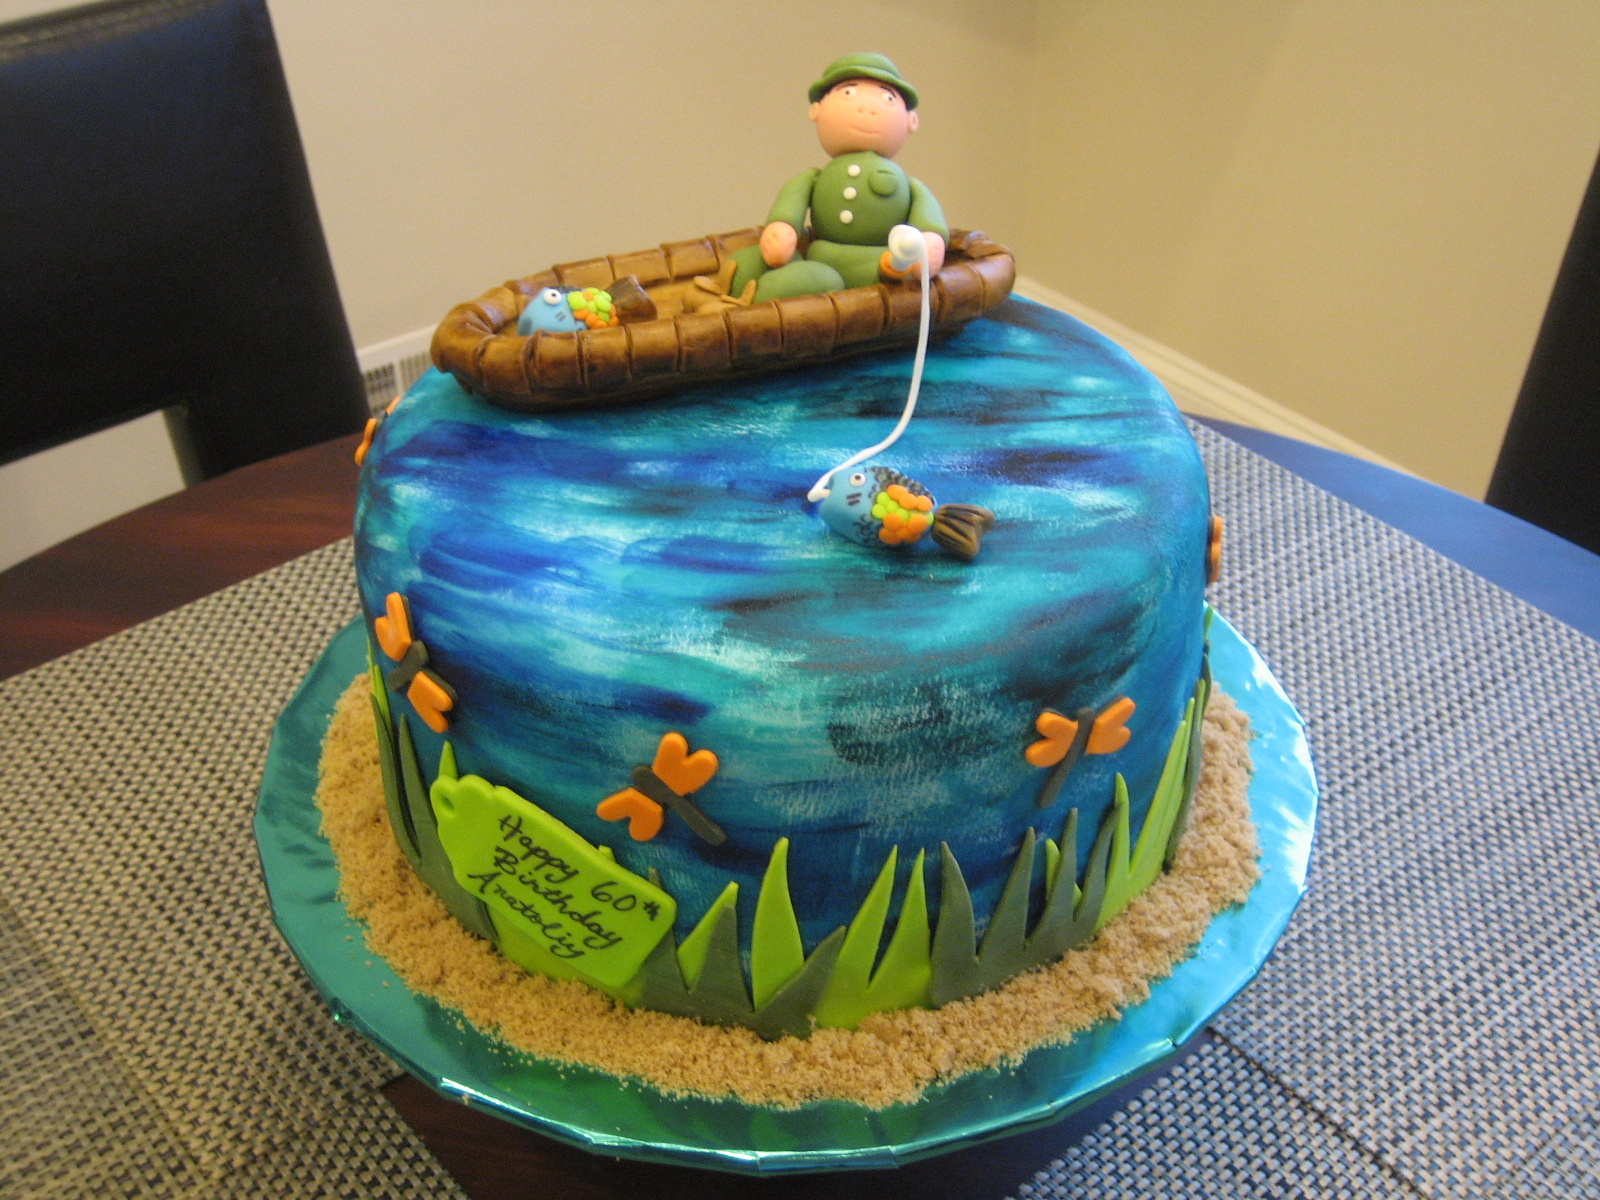 Fish Theme Birthday Birthday Cake http://www.lapatisserierose.com/2011/01/fishing-themed-60th-birthday-cake.html